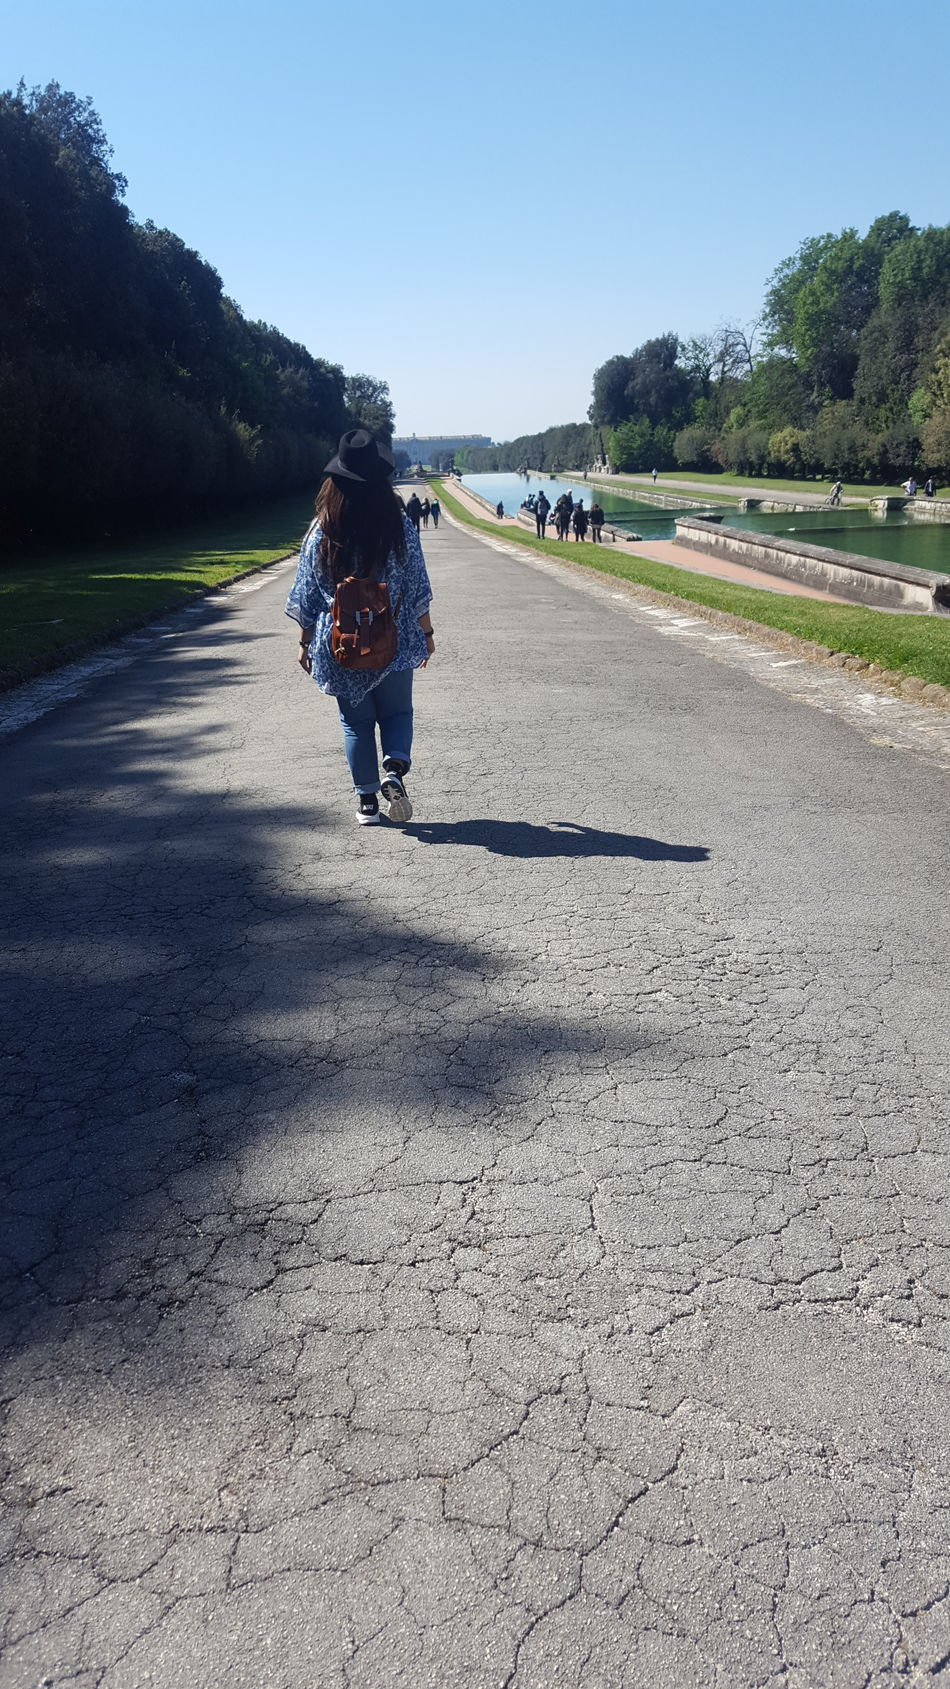 Reggia di caserta One Person Road Adult Sky Snap:barradas_mary98 Photographer Freedom Taking Photos Smile❤ Elegance Everywhere Hello World Love Streetphotography Sweet Paradise Mylife Free Dream Crazy EyeEm Best Edits Asiangirl That's Me! Italiangirl EyeEm Best Shots